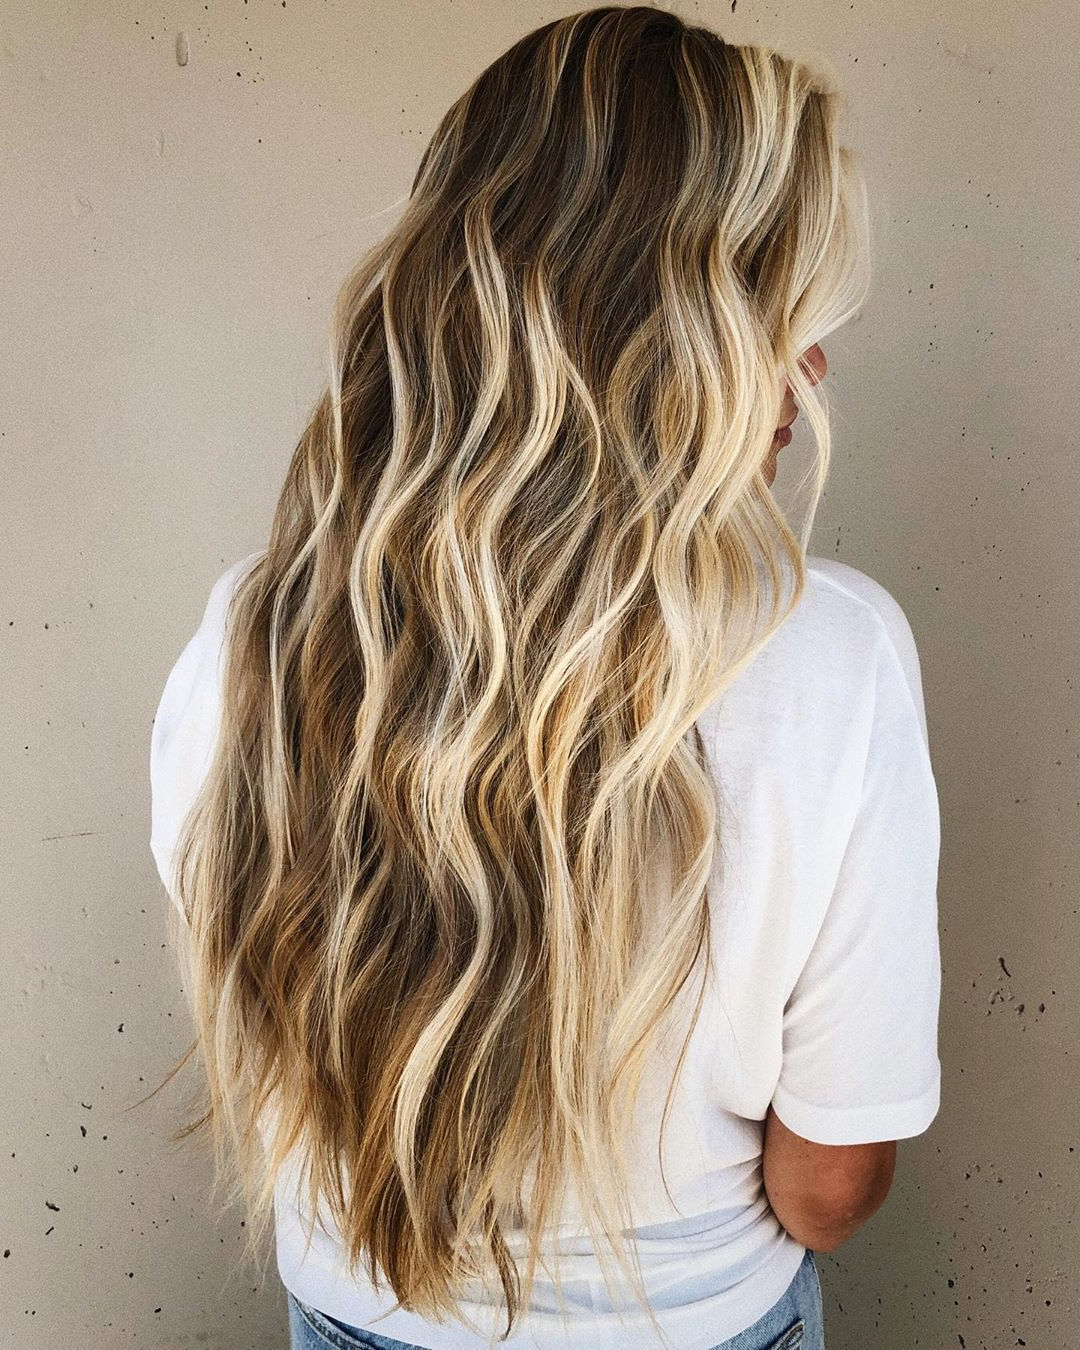 How To Get Perfect Beach Intended For Well Known Mid Length Beach Waves Hairstyles (View 11 of 20)